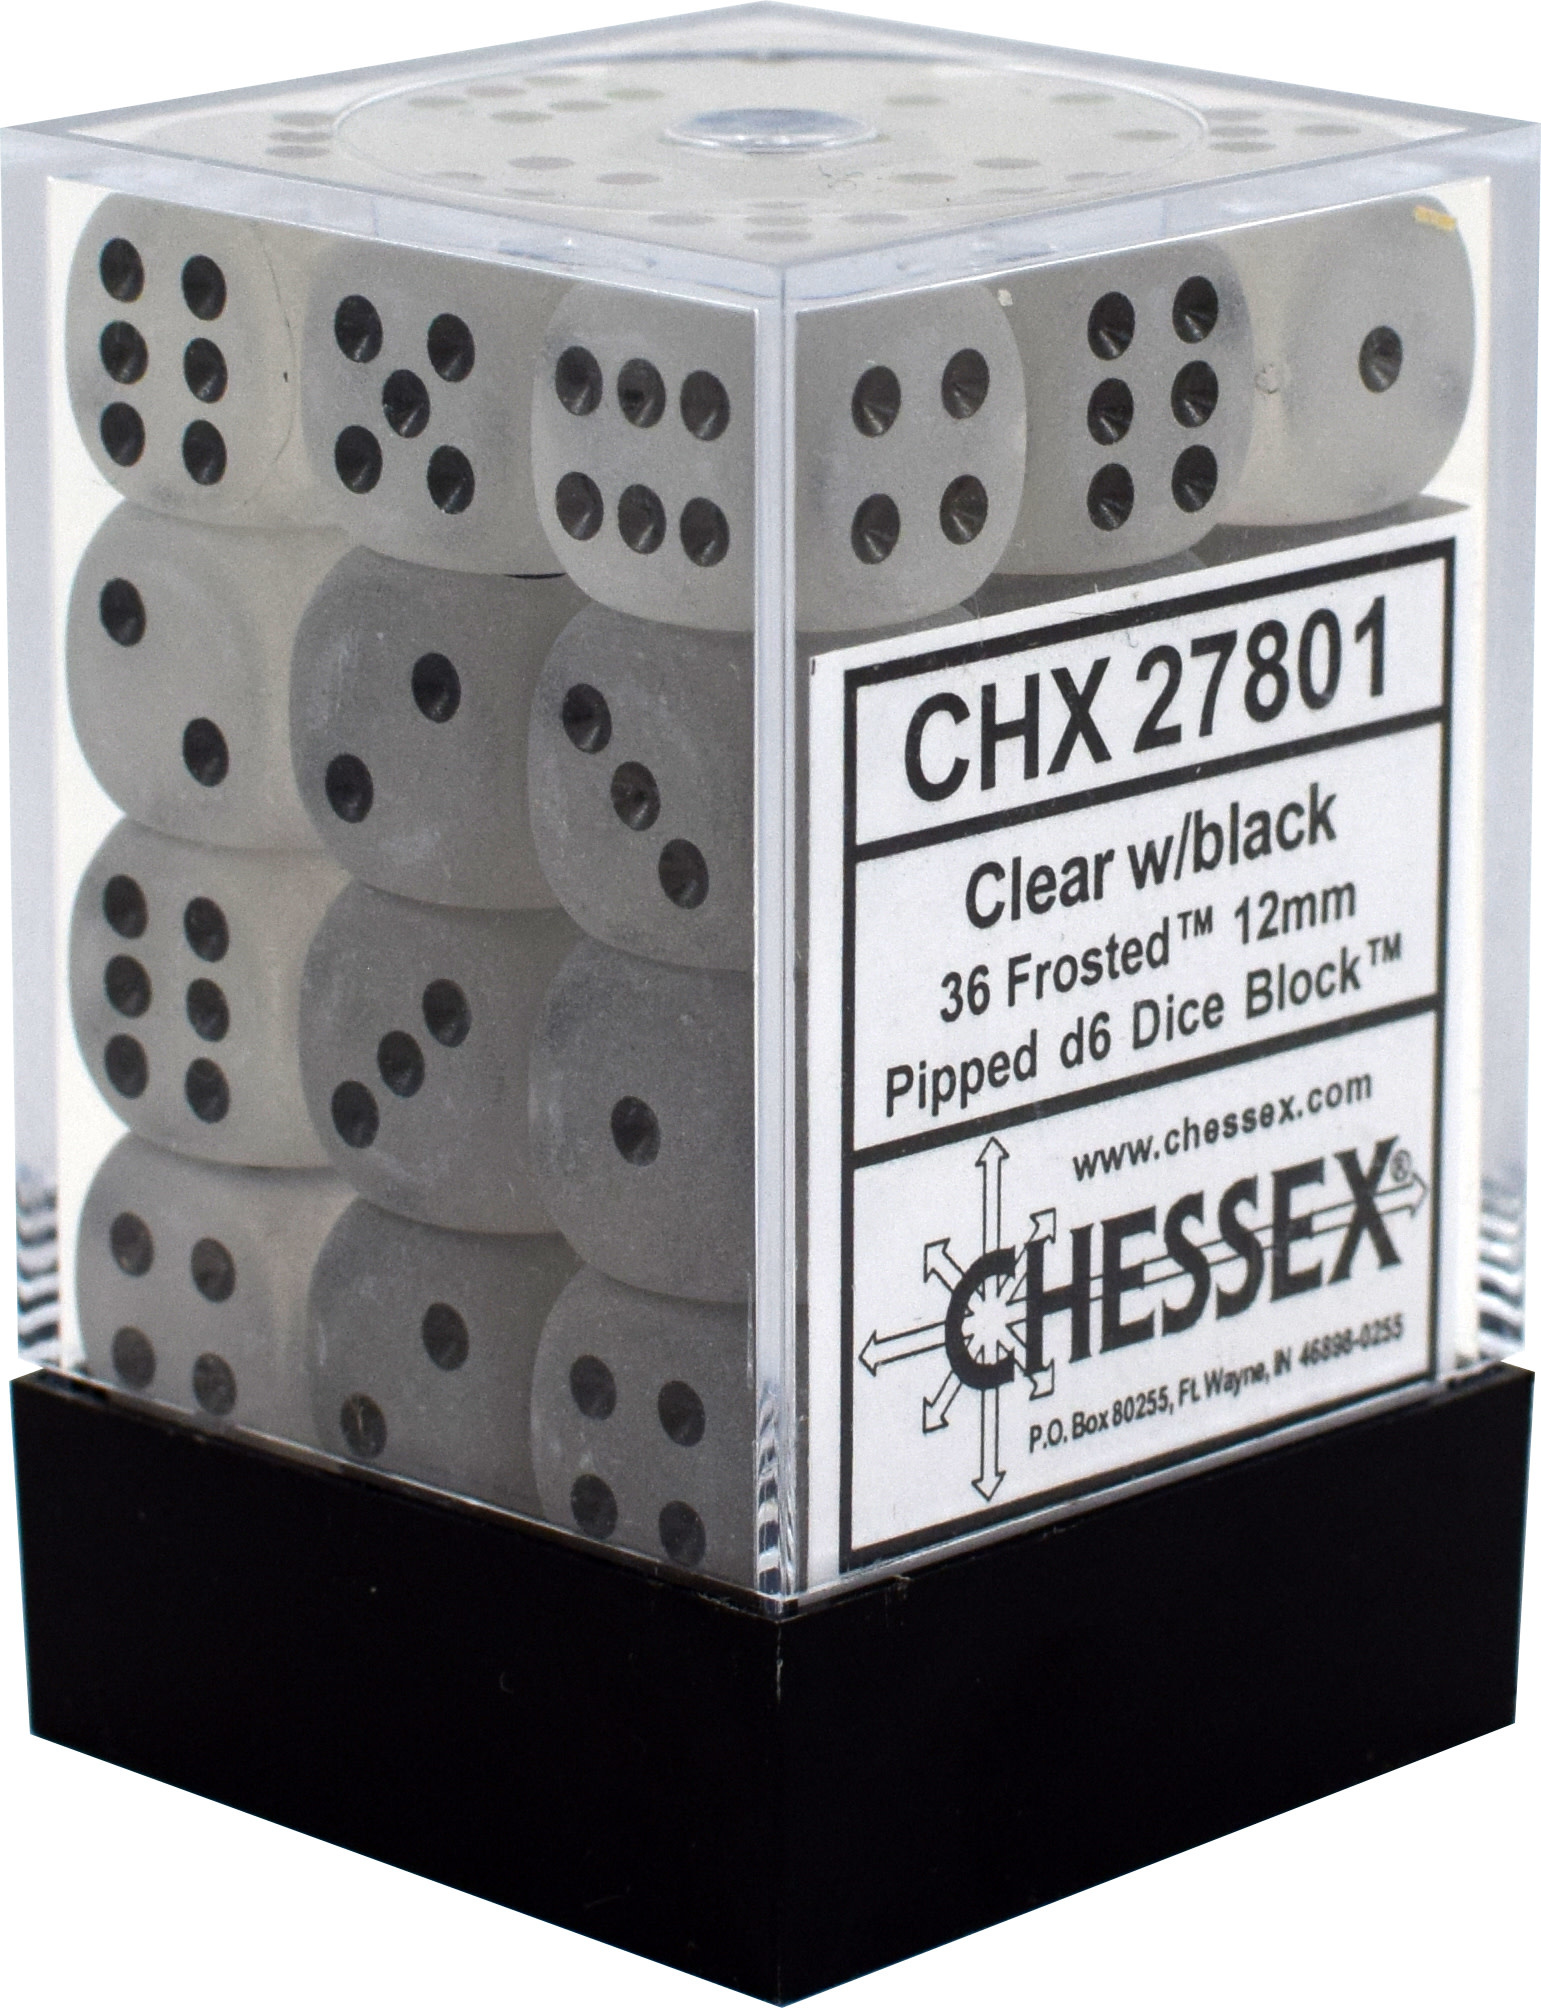 Chessex Chessex Frost Clear/Black Set of 36 D6 Dice